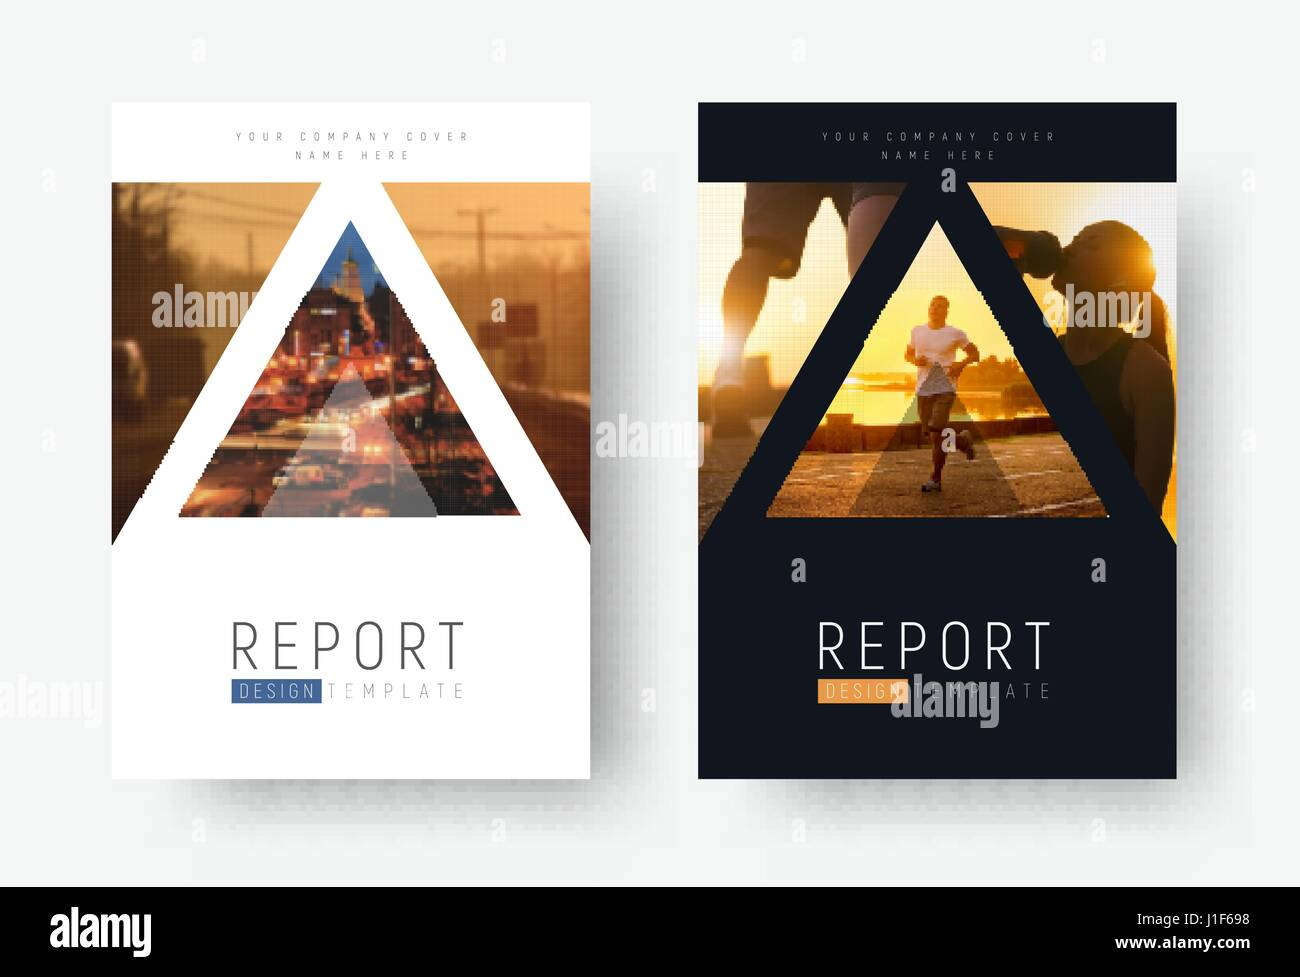 template of universal covers for business travel sports or food